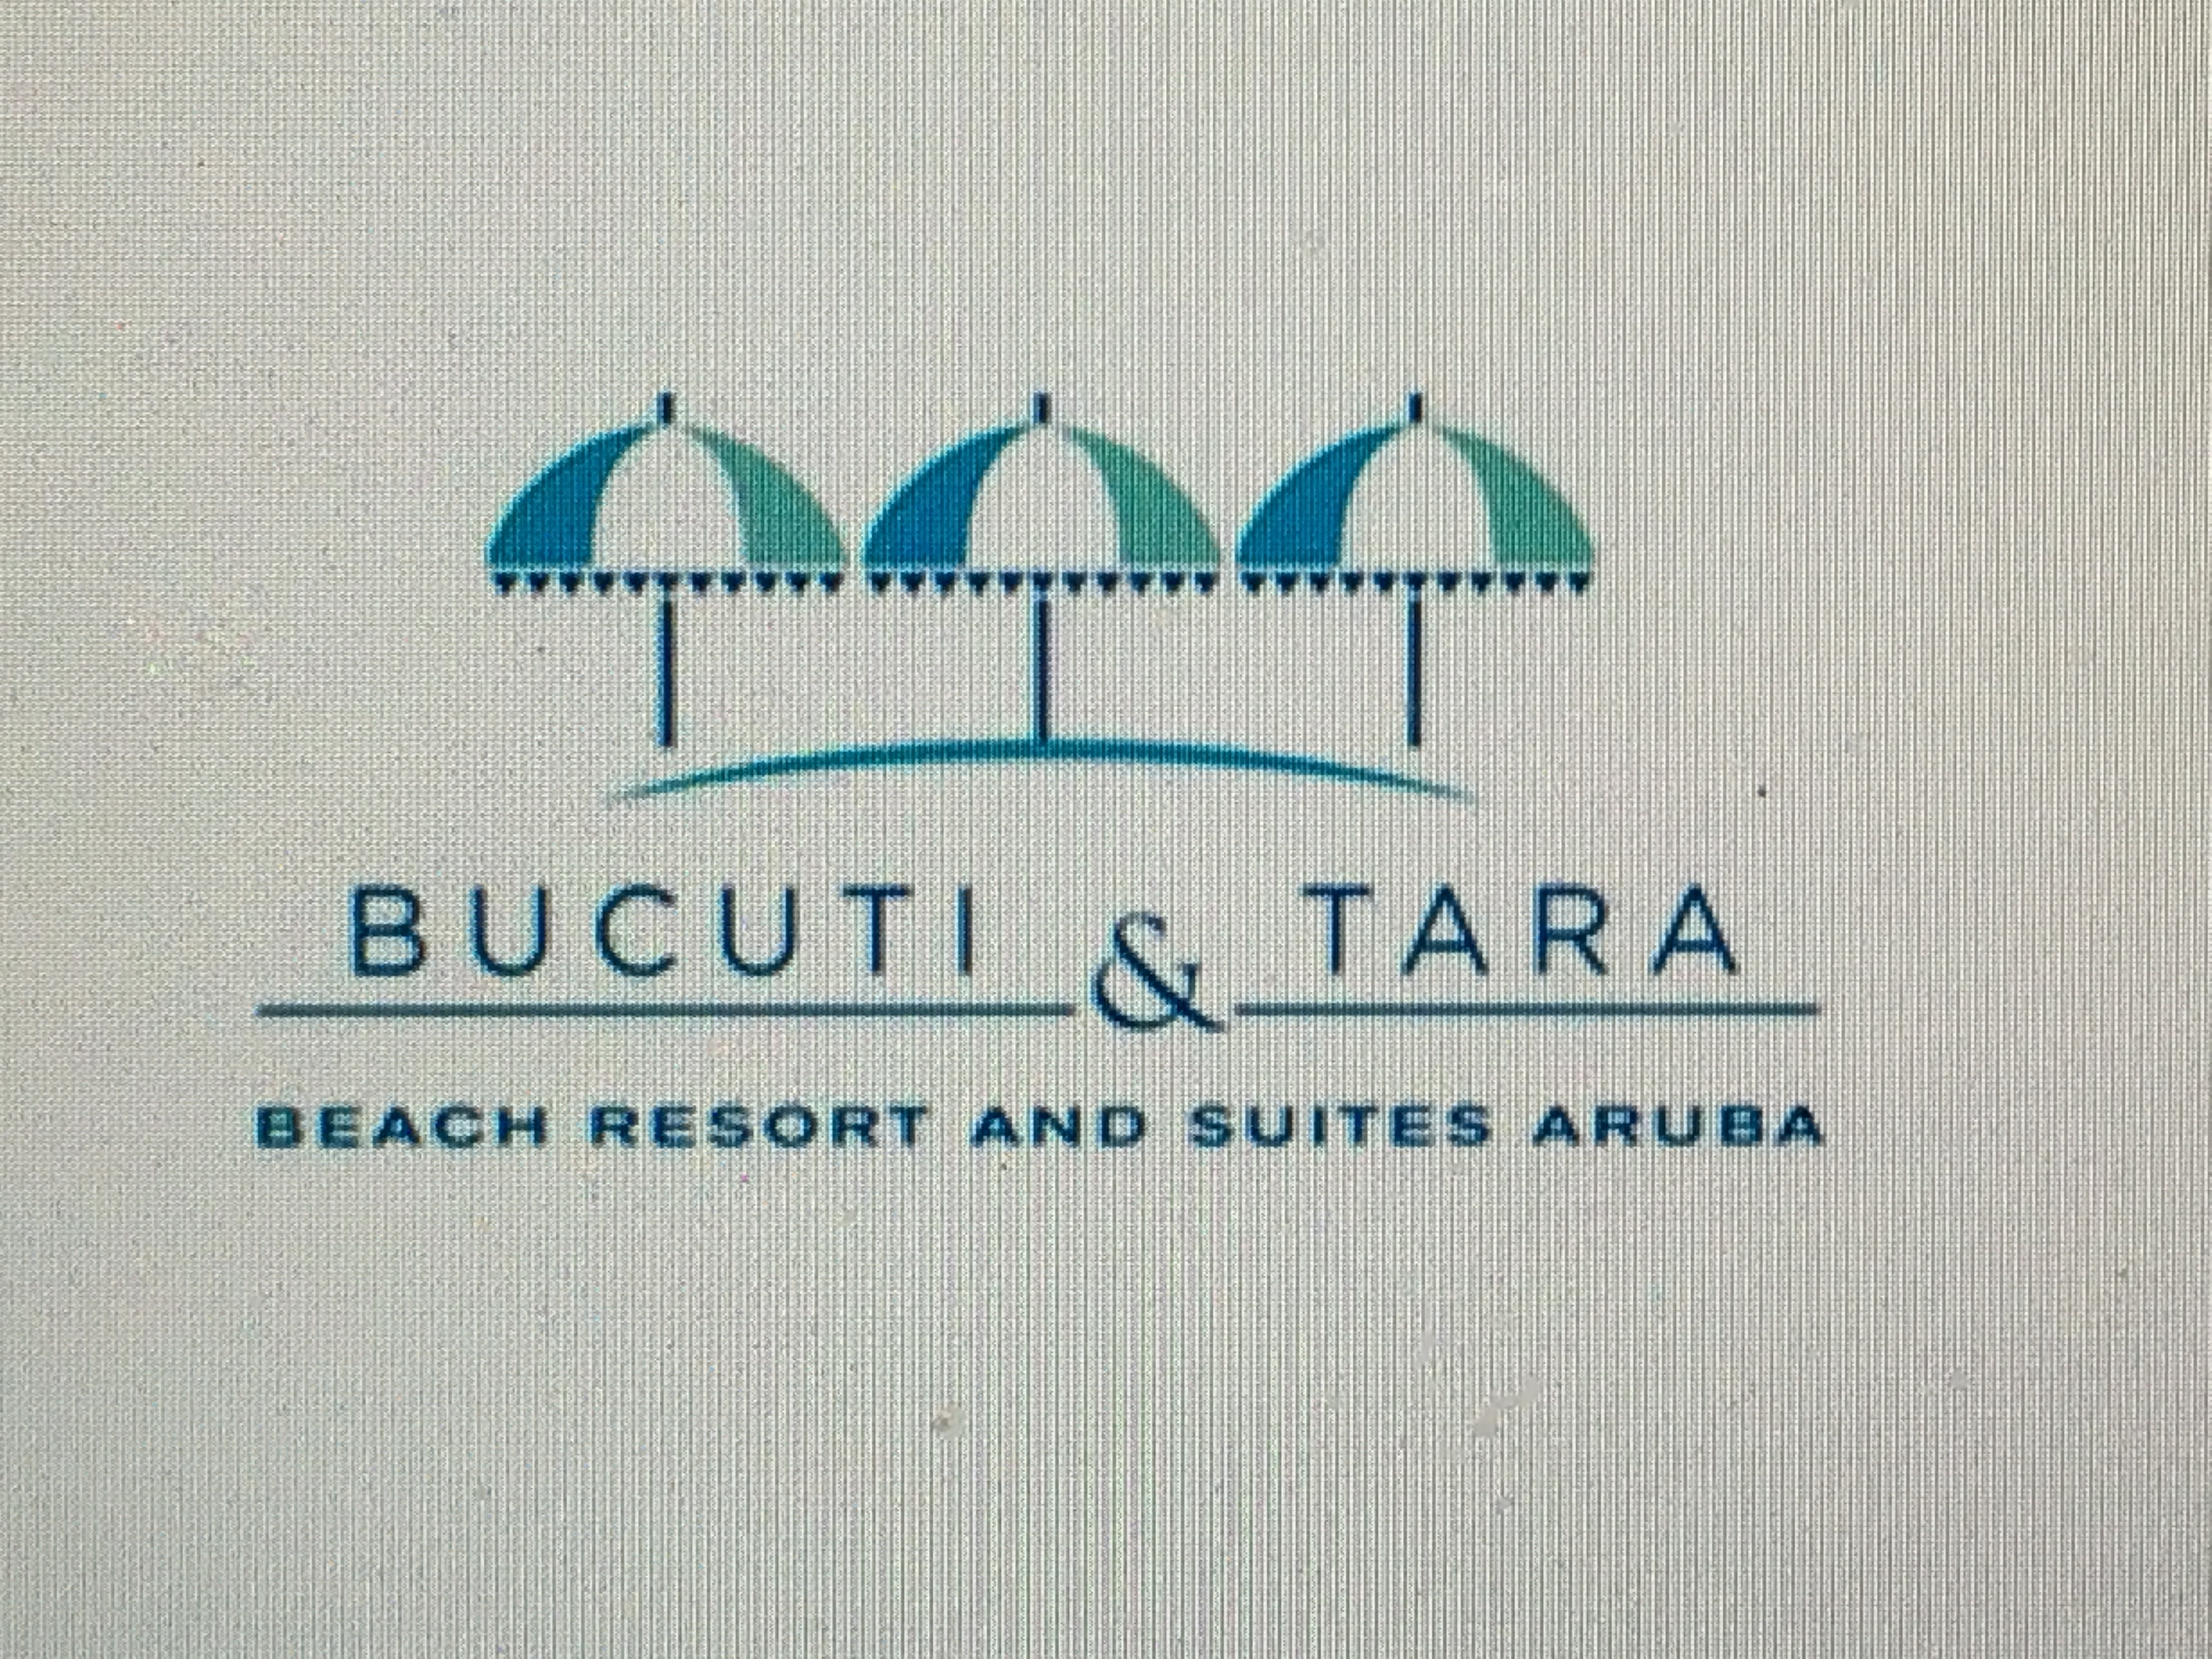 EUROPEAN-STYLE RESORT  COUPLES ONLY.